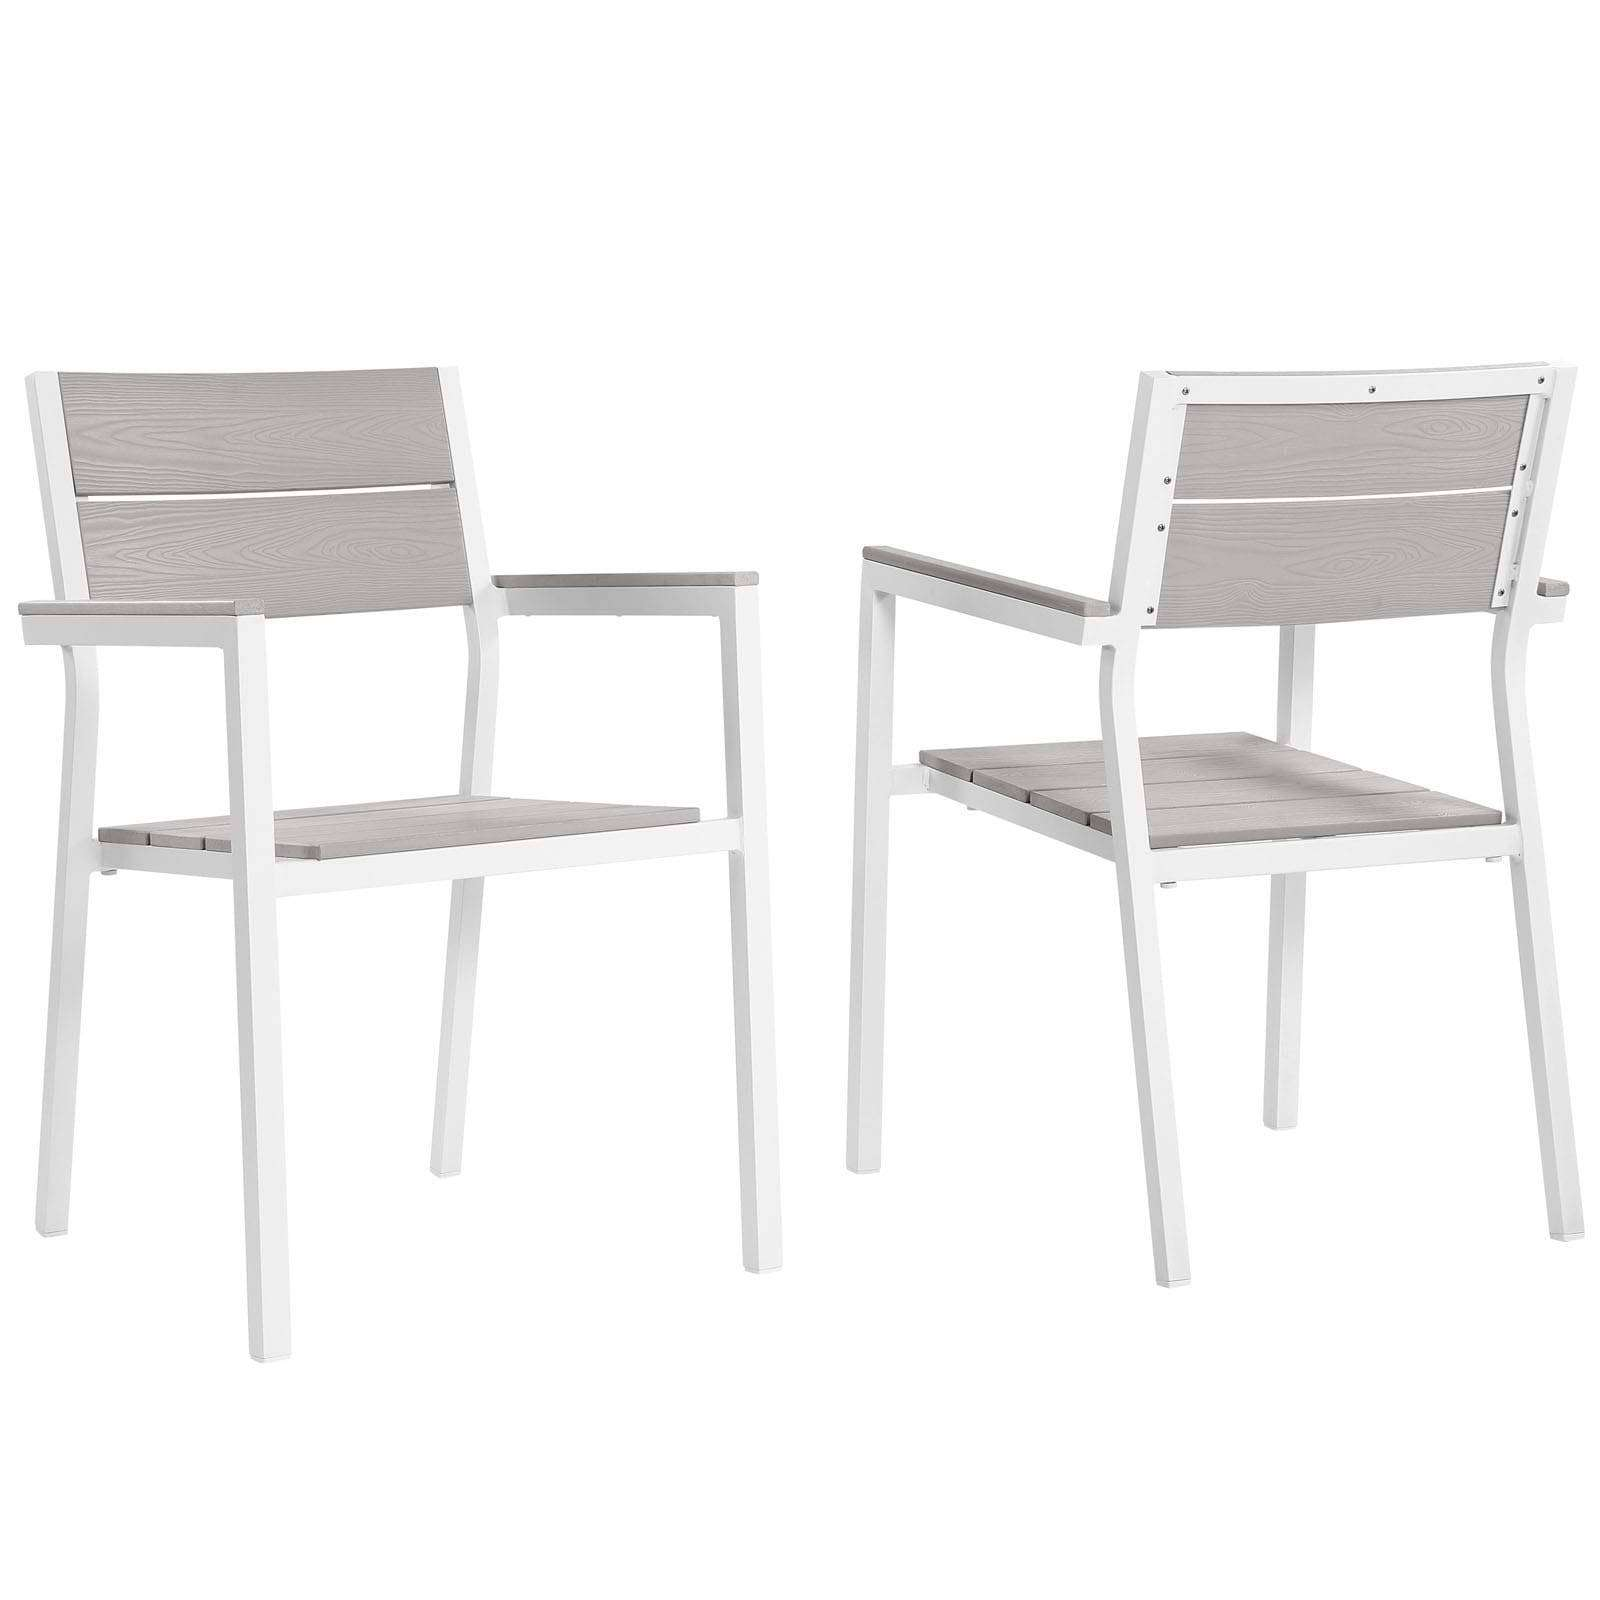 ... Maine Dining Armchair Outdoor Patio Set Of 2 ...